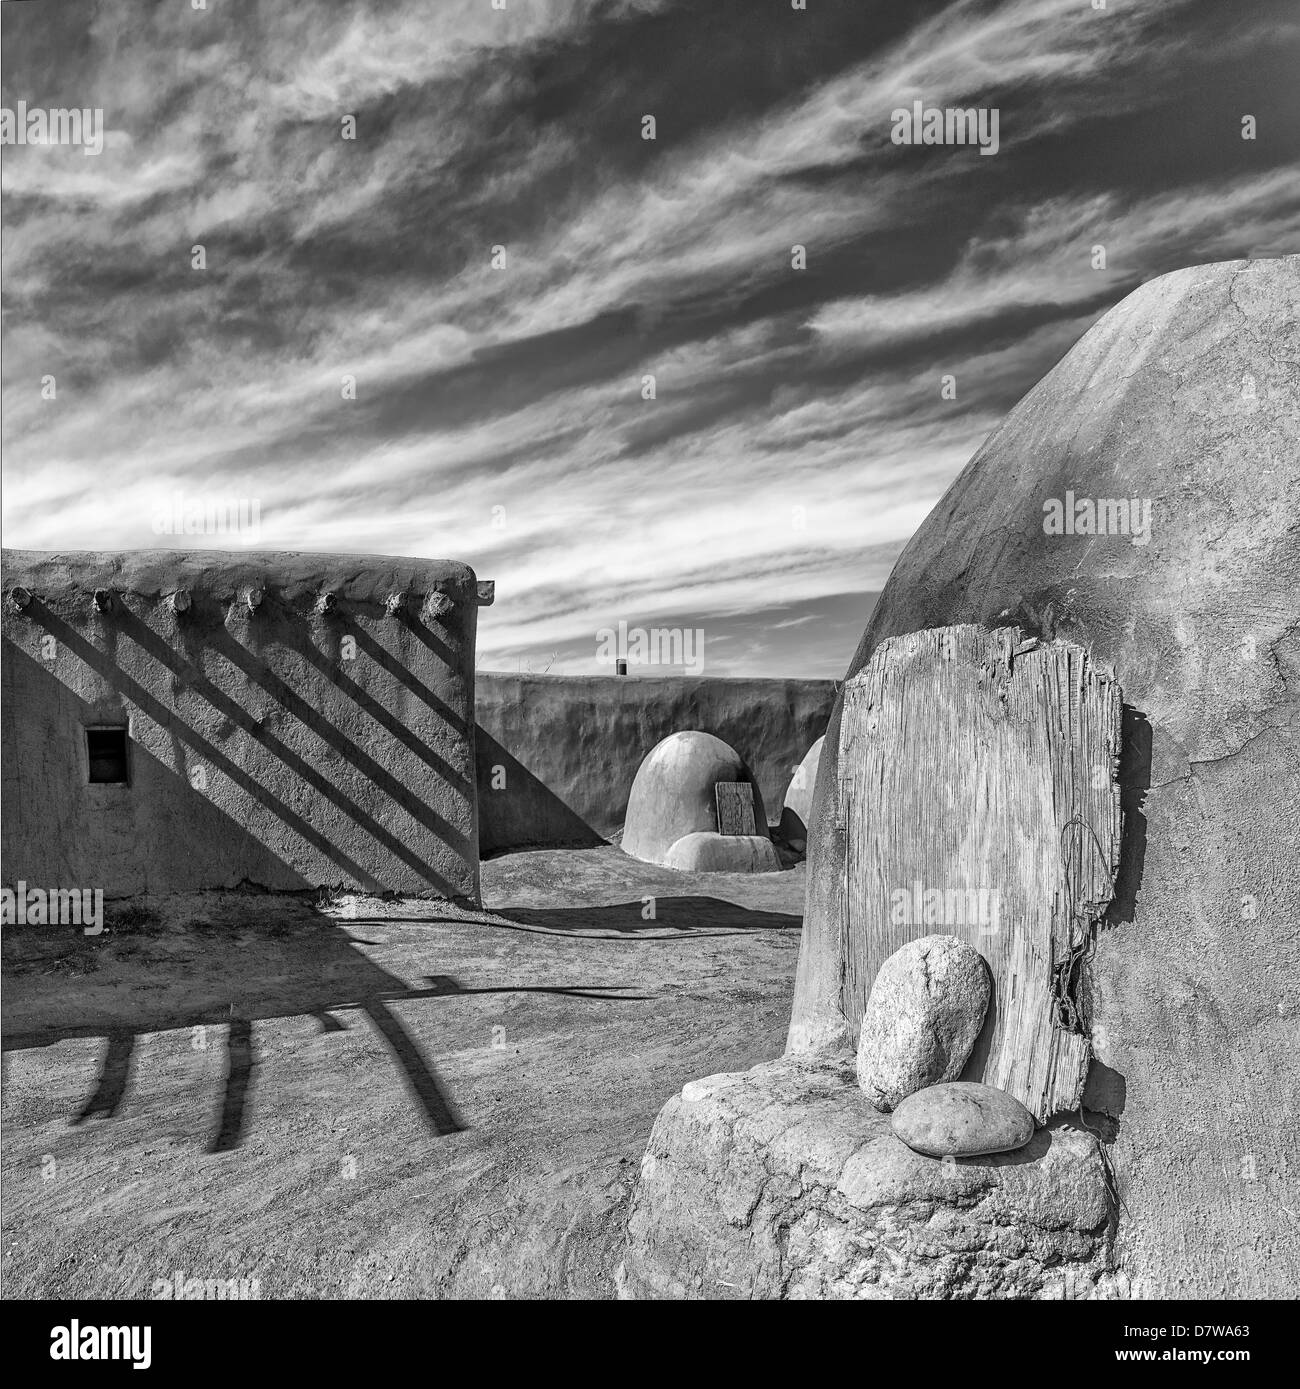 Bee Hive bread ovens at Taos Pueblo,B&W in the style of Ansel Adams,high resolution  and very large file size. - Stock Image